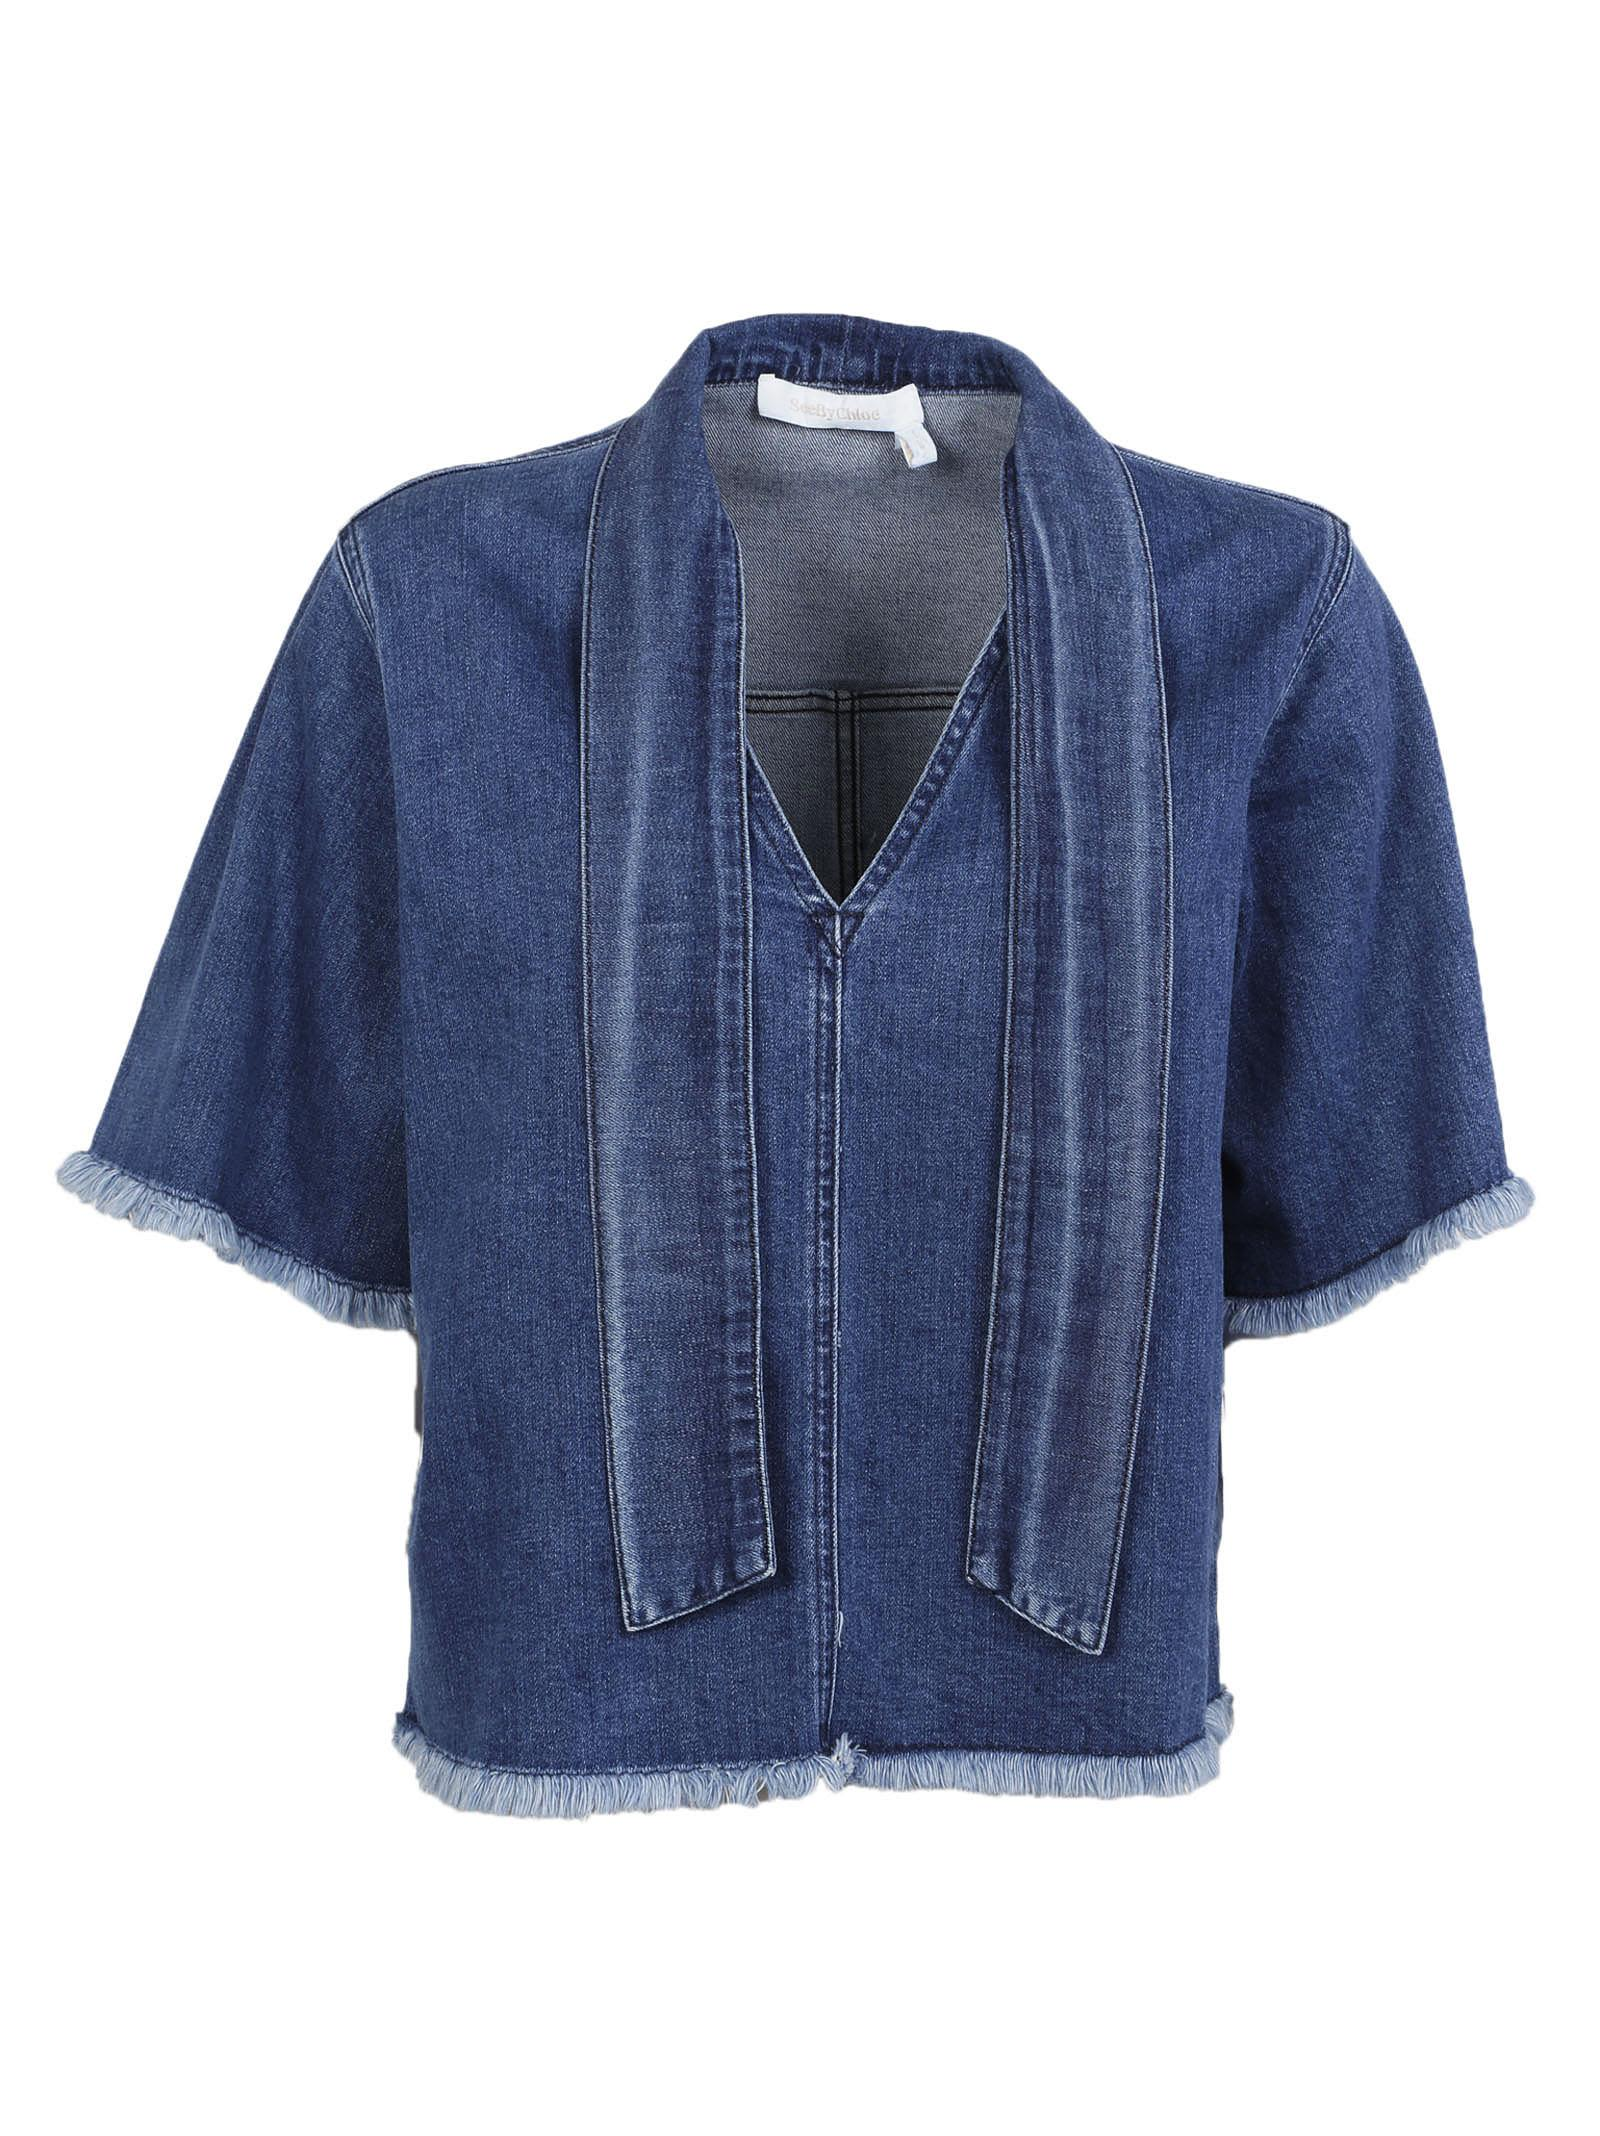 See By Chloé Denim Blouse